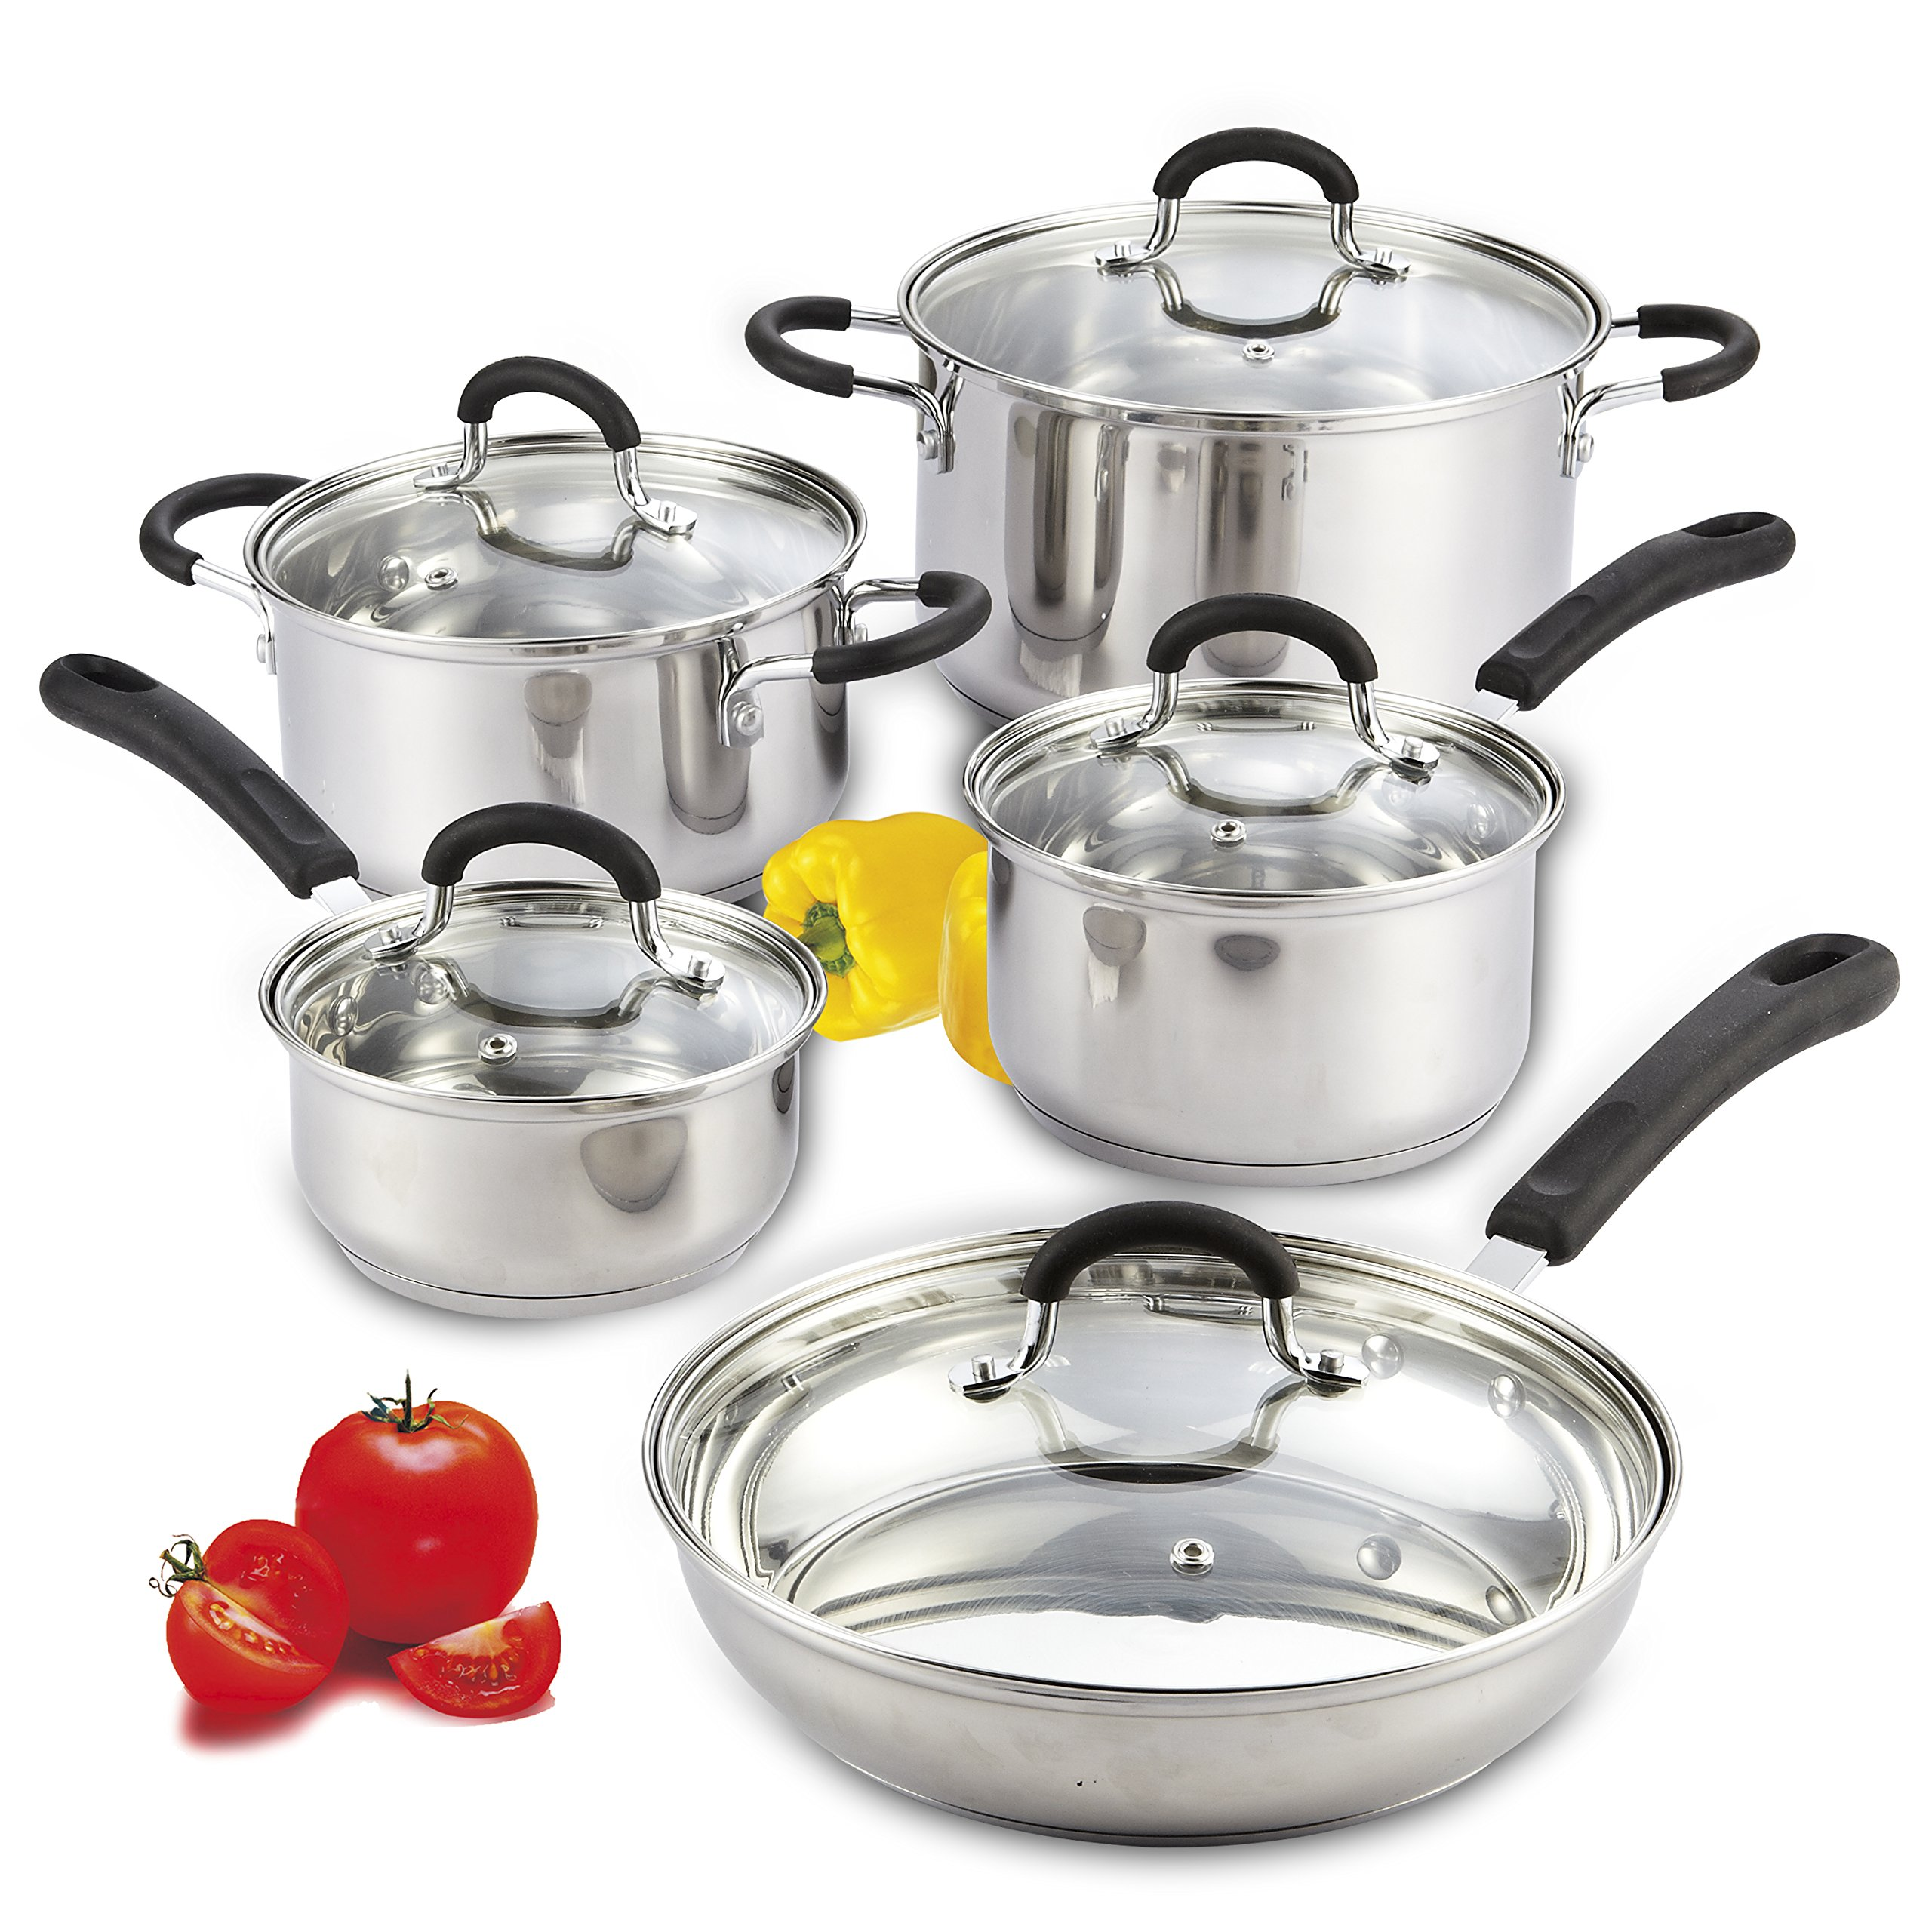 Cook Home 10 Piece Stainless Cookware